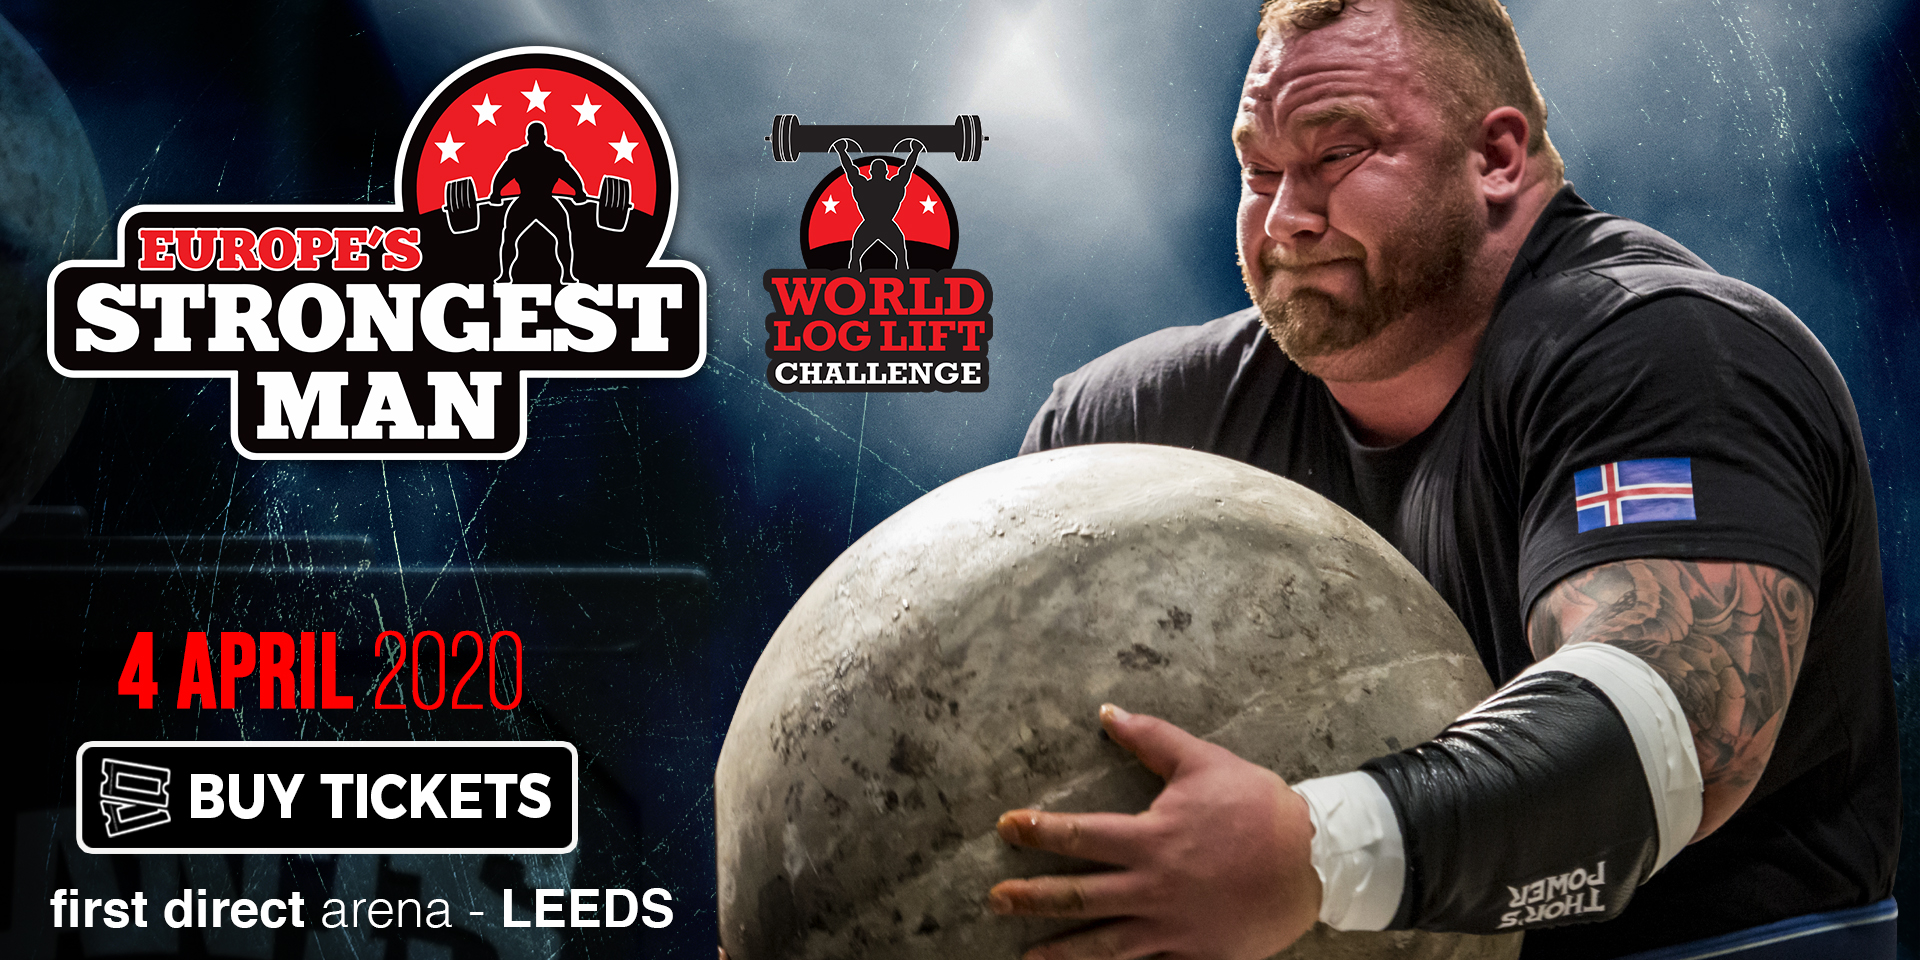 Come and see the BIGGEST live strongman show in the world! Europe's Strongest Man is returning to First Direct Arena, Leeds in 2020.